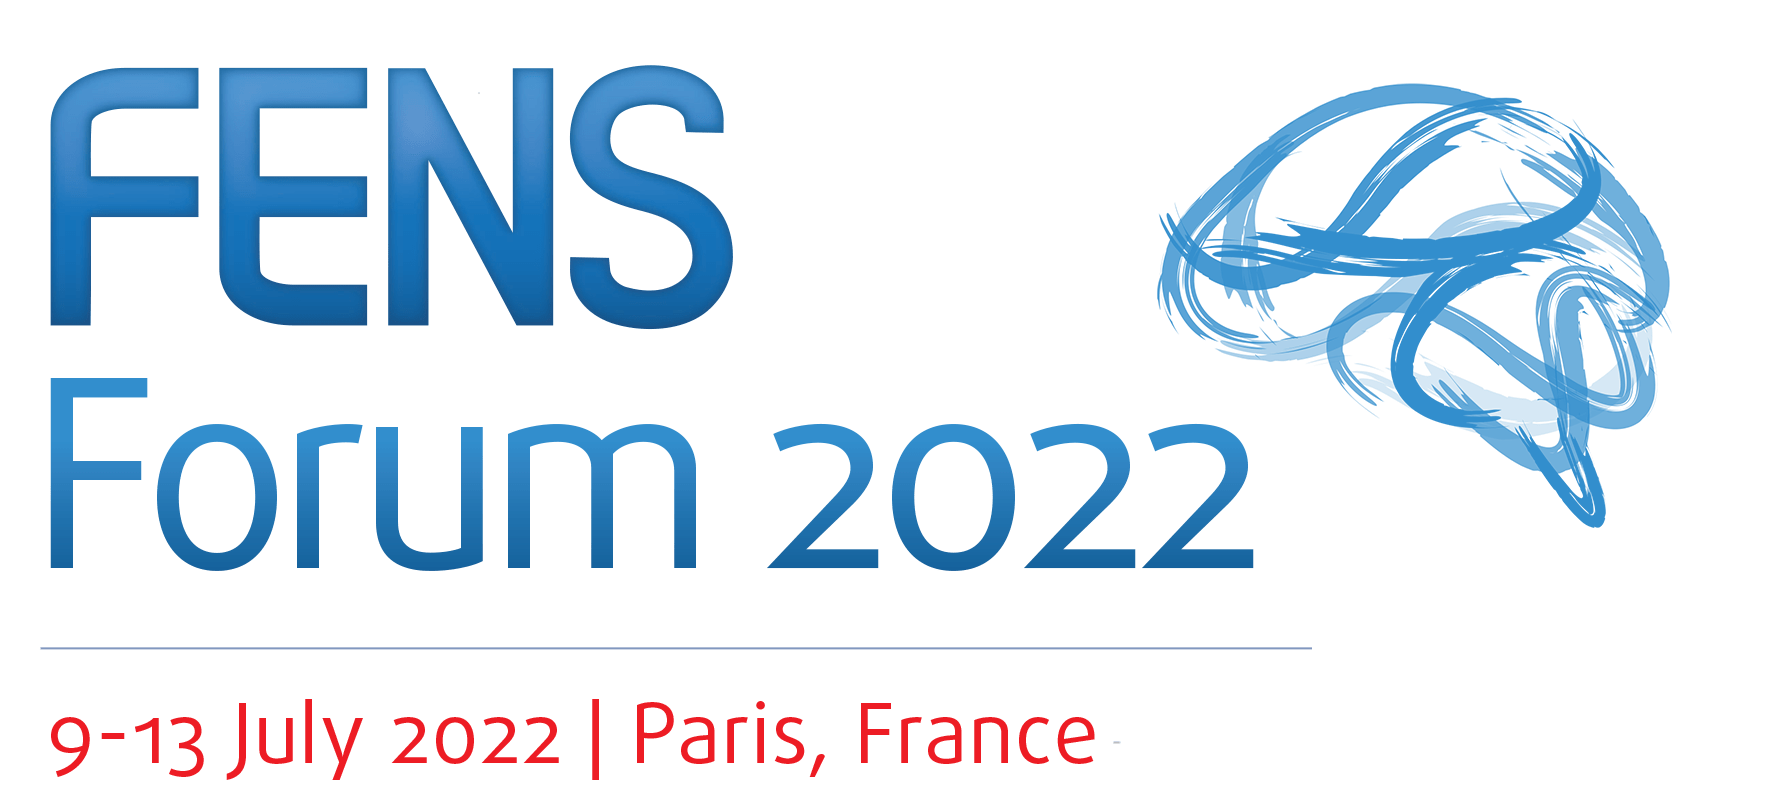 FENS Forum 2022 | International Neuroscience Conference